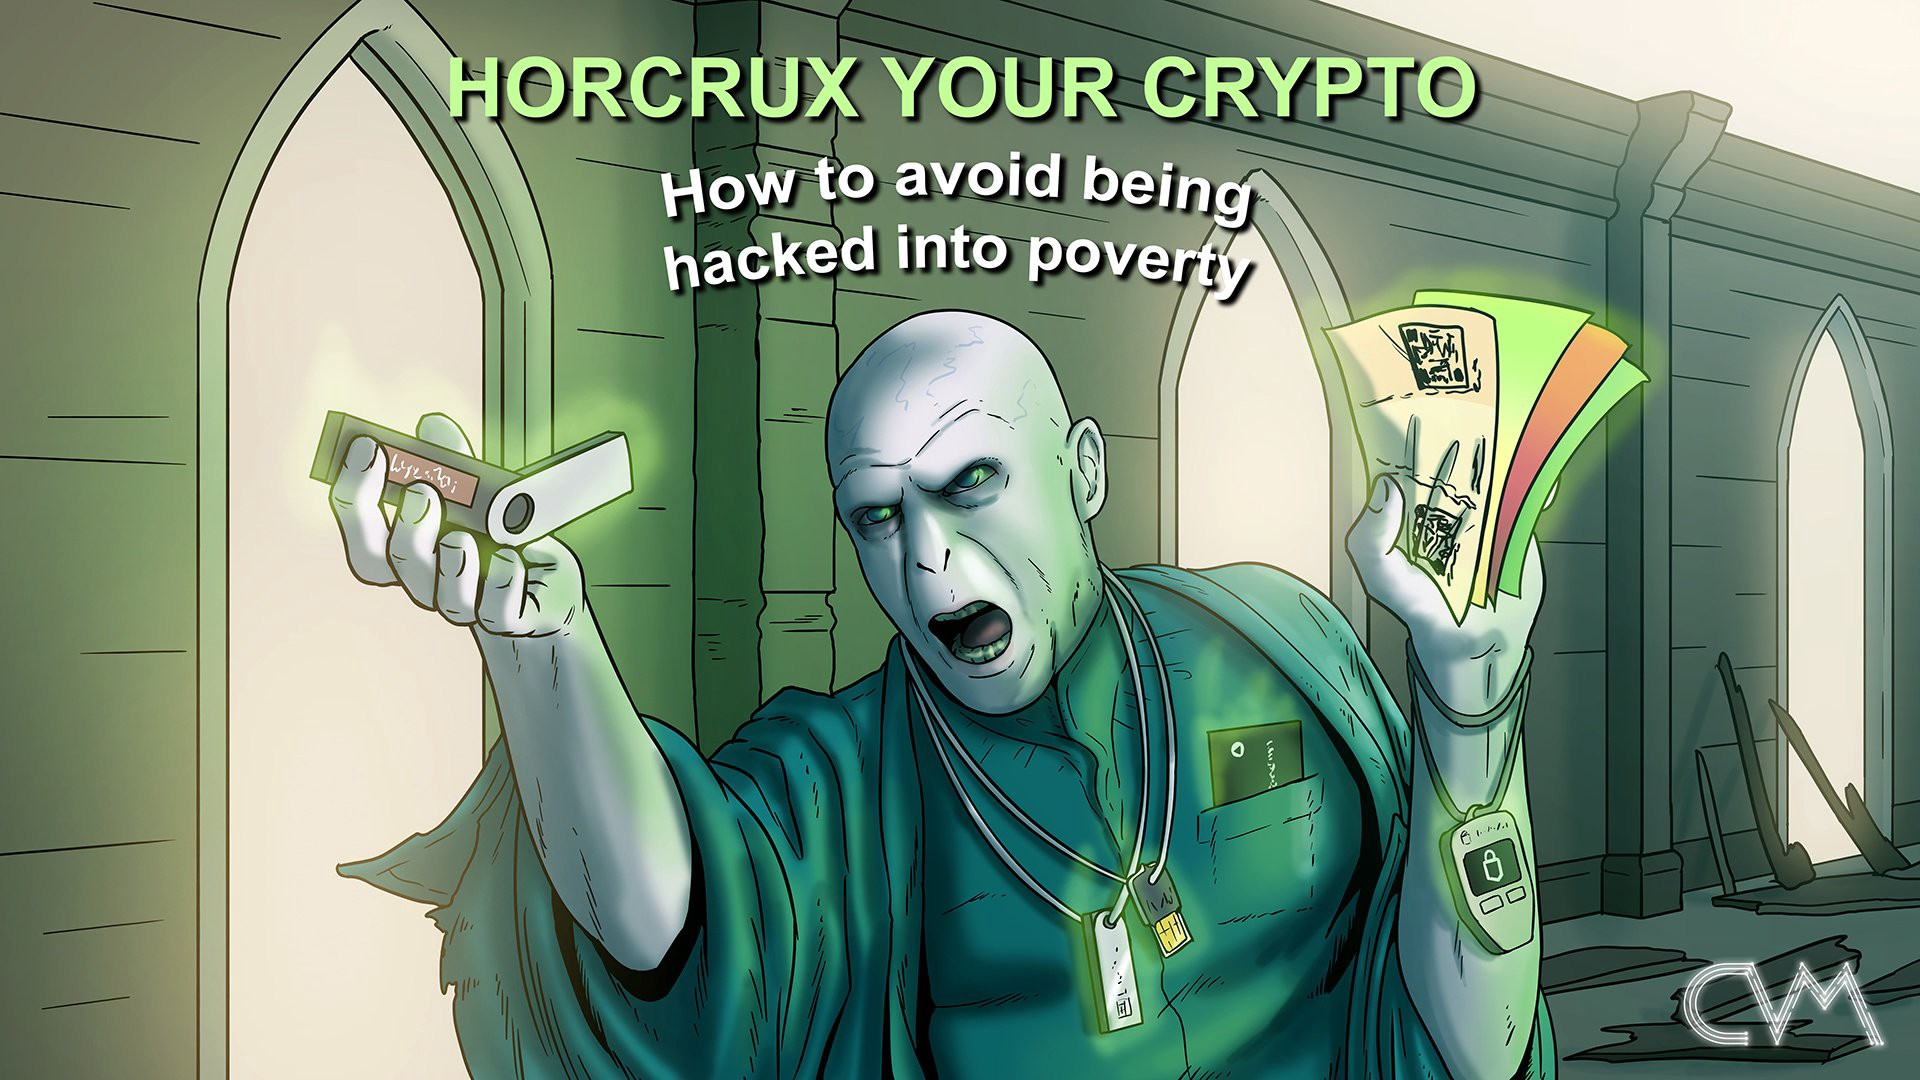 529667d6 HORCRUX YOUR CRYPTO: HOW TO AVOID BEING HACKED INTO POVERTY